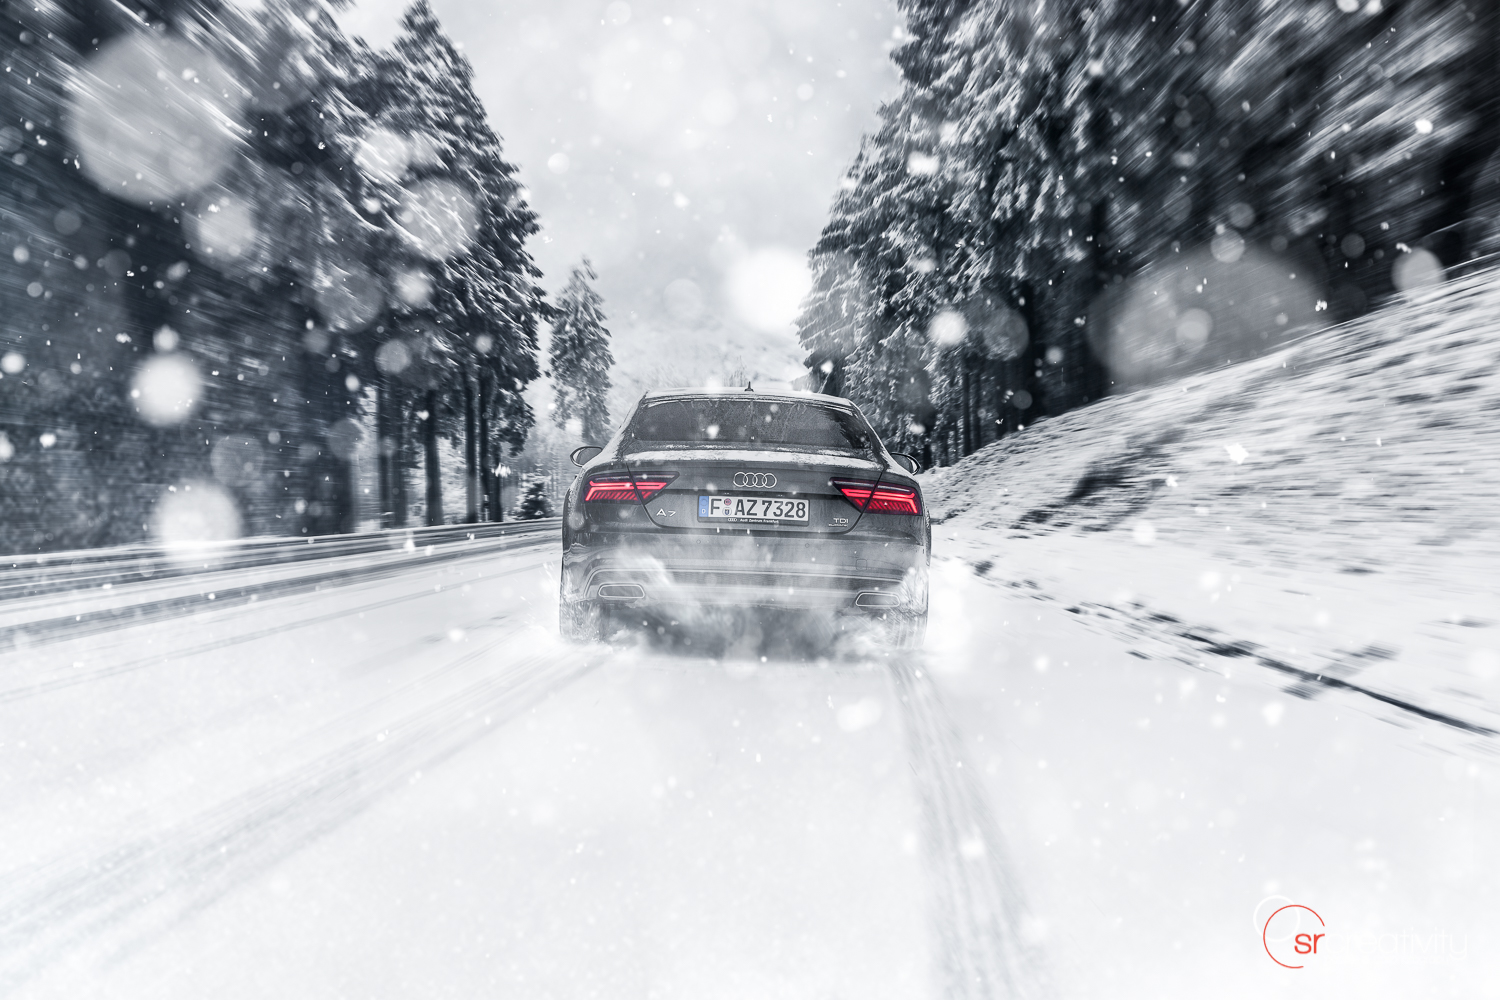 Audi A7 2015 - SR-CReativity - www.sr-creativity.de